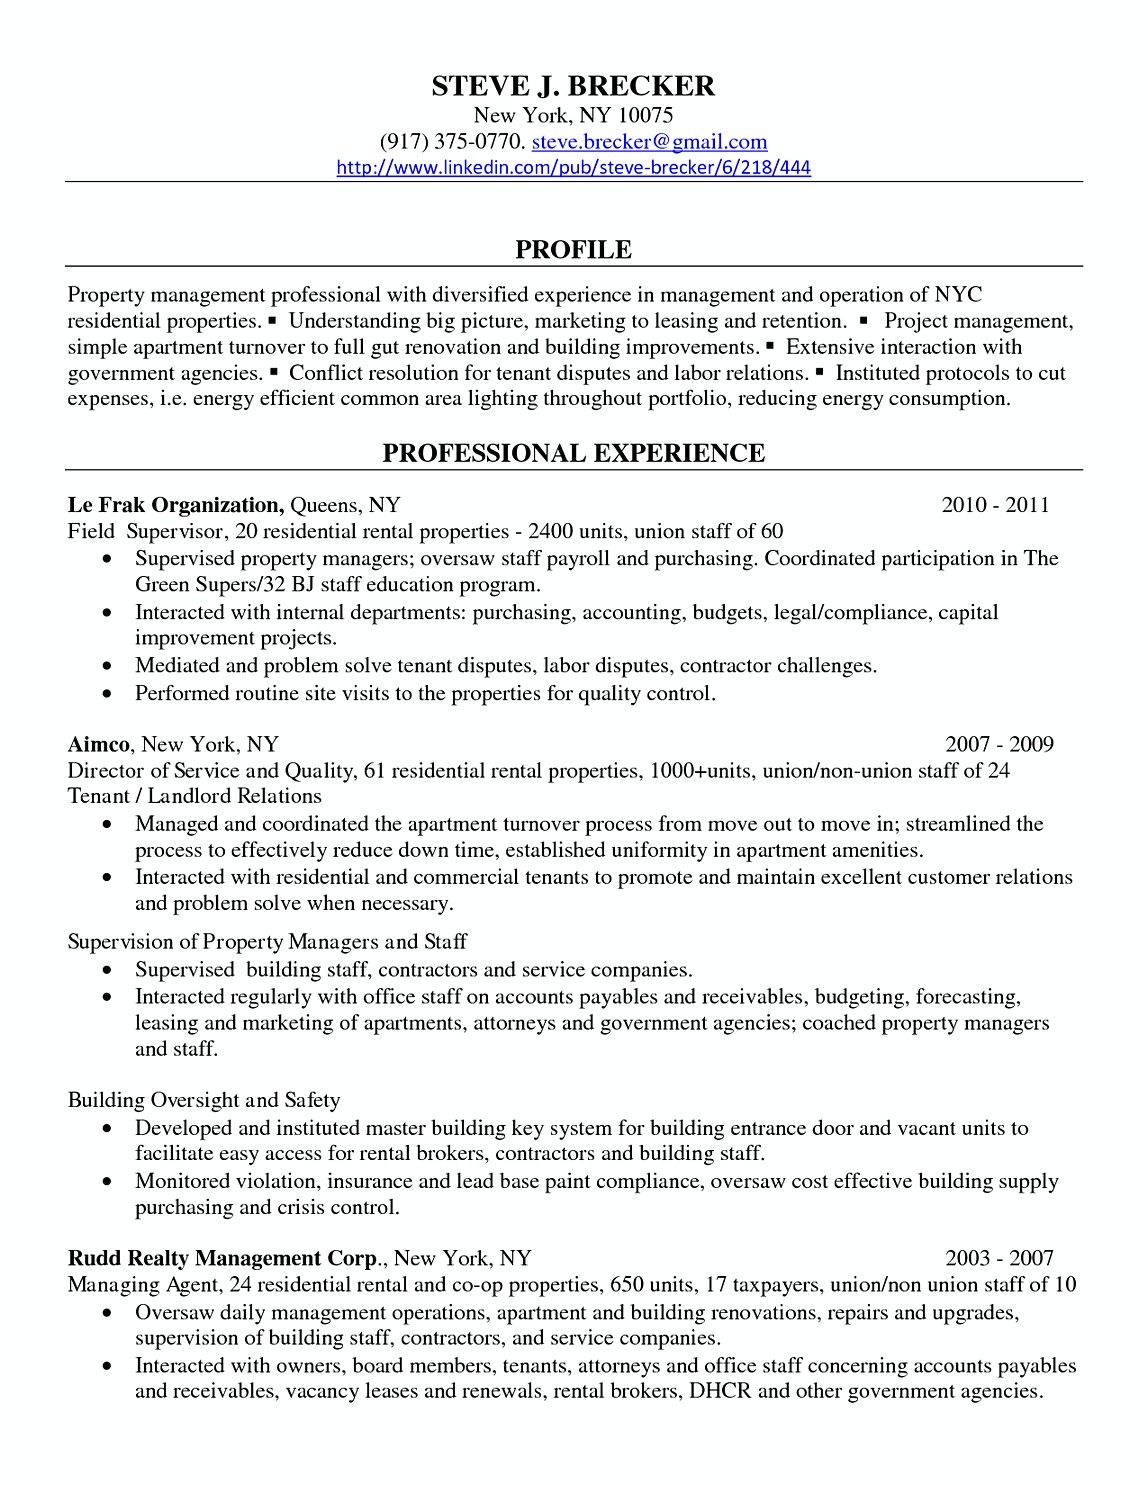 Apartment Manager Resume Alluring Property Manager Professional Resume Samples  Commercial Property .